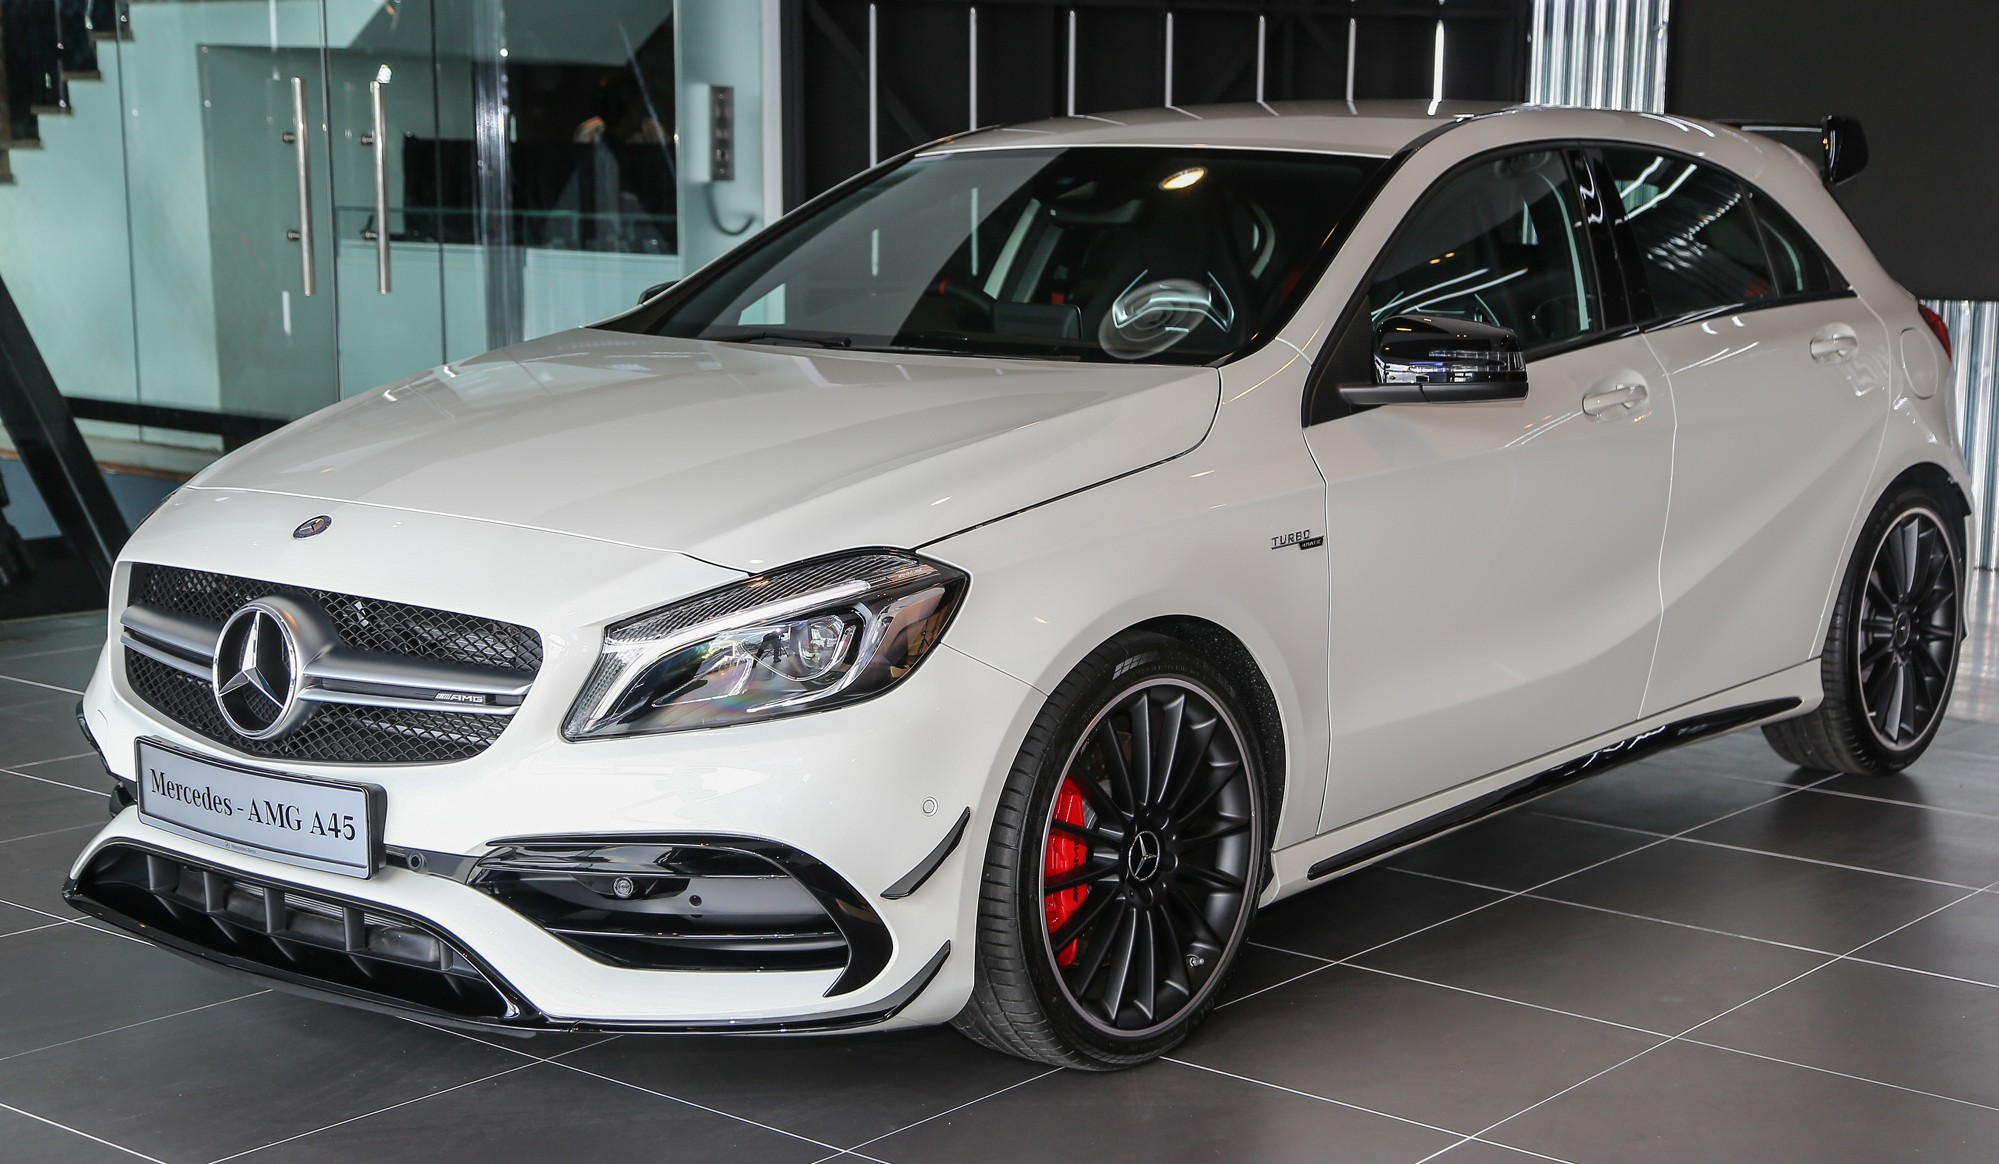 mercedes amg a45 facelift in m 39 sia 381 hp rm349k. Black Bedroom Furniture Sets. Home Design Ideas